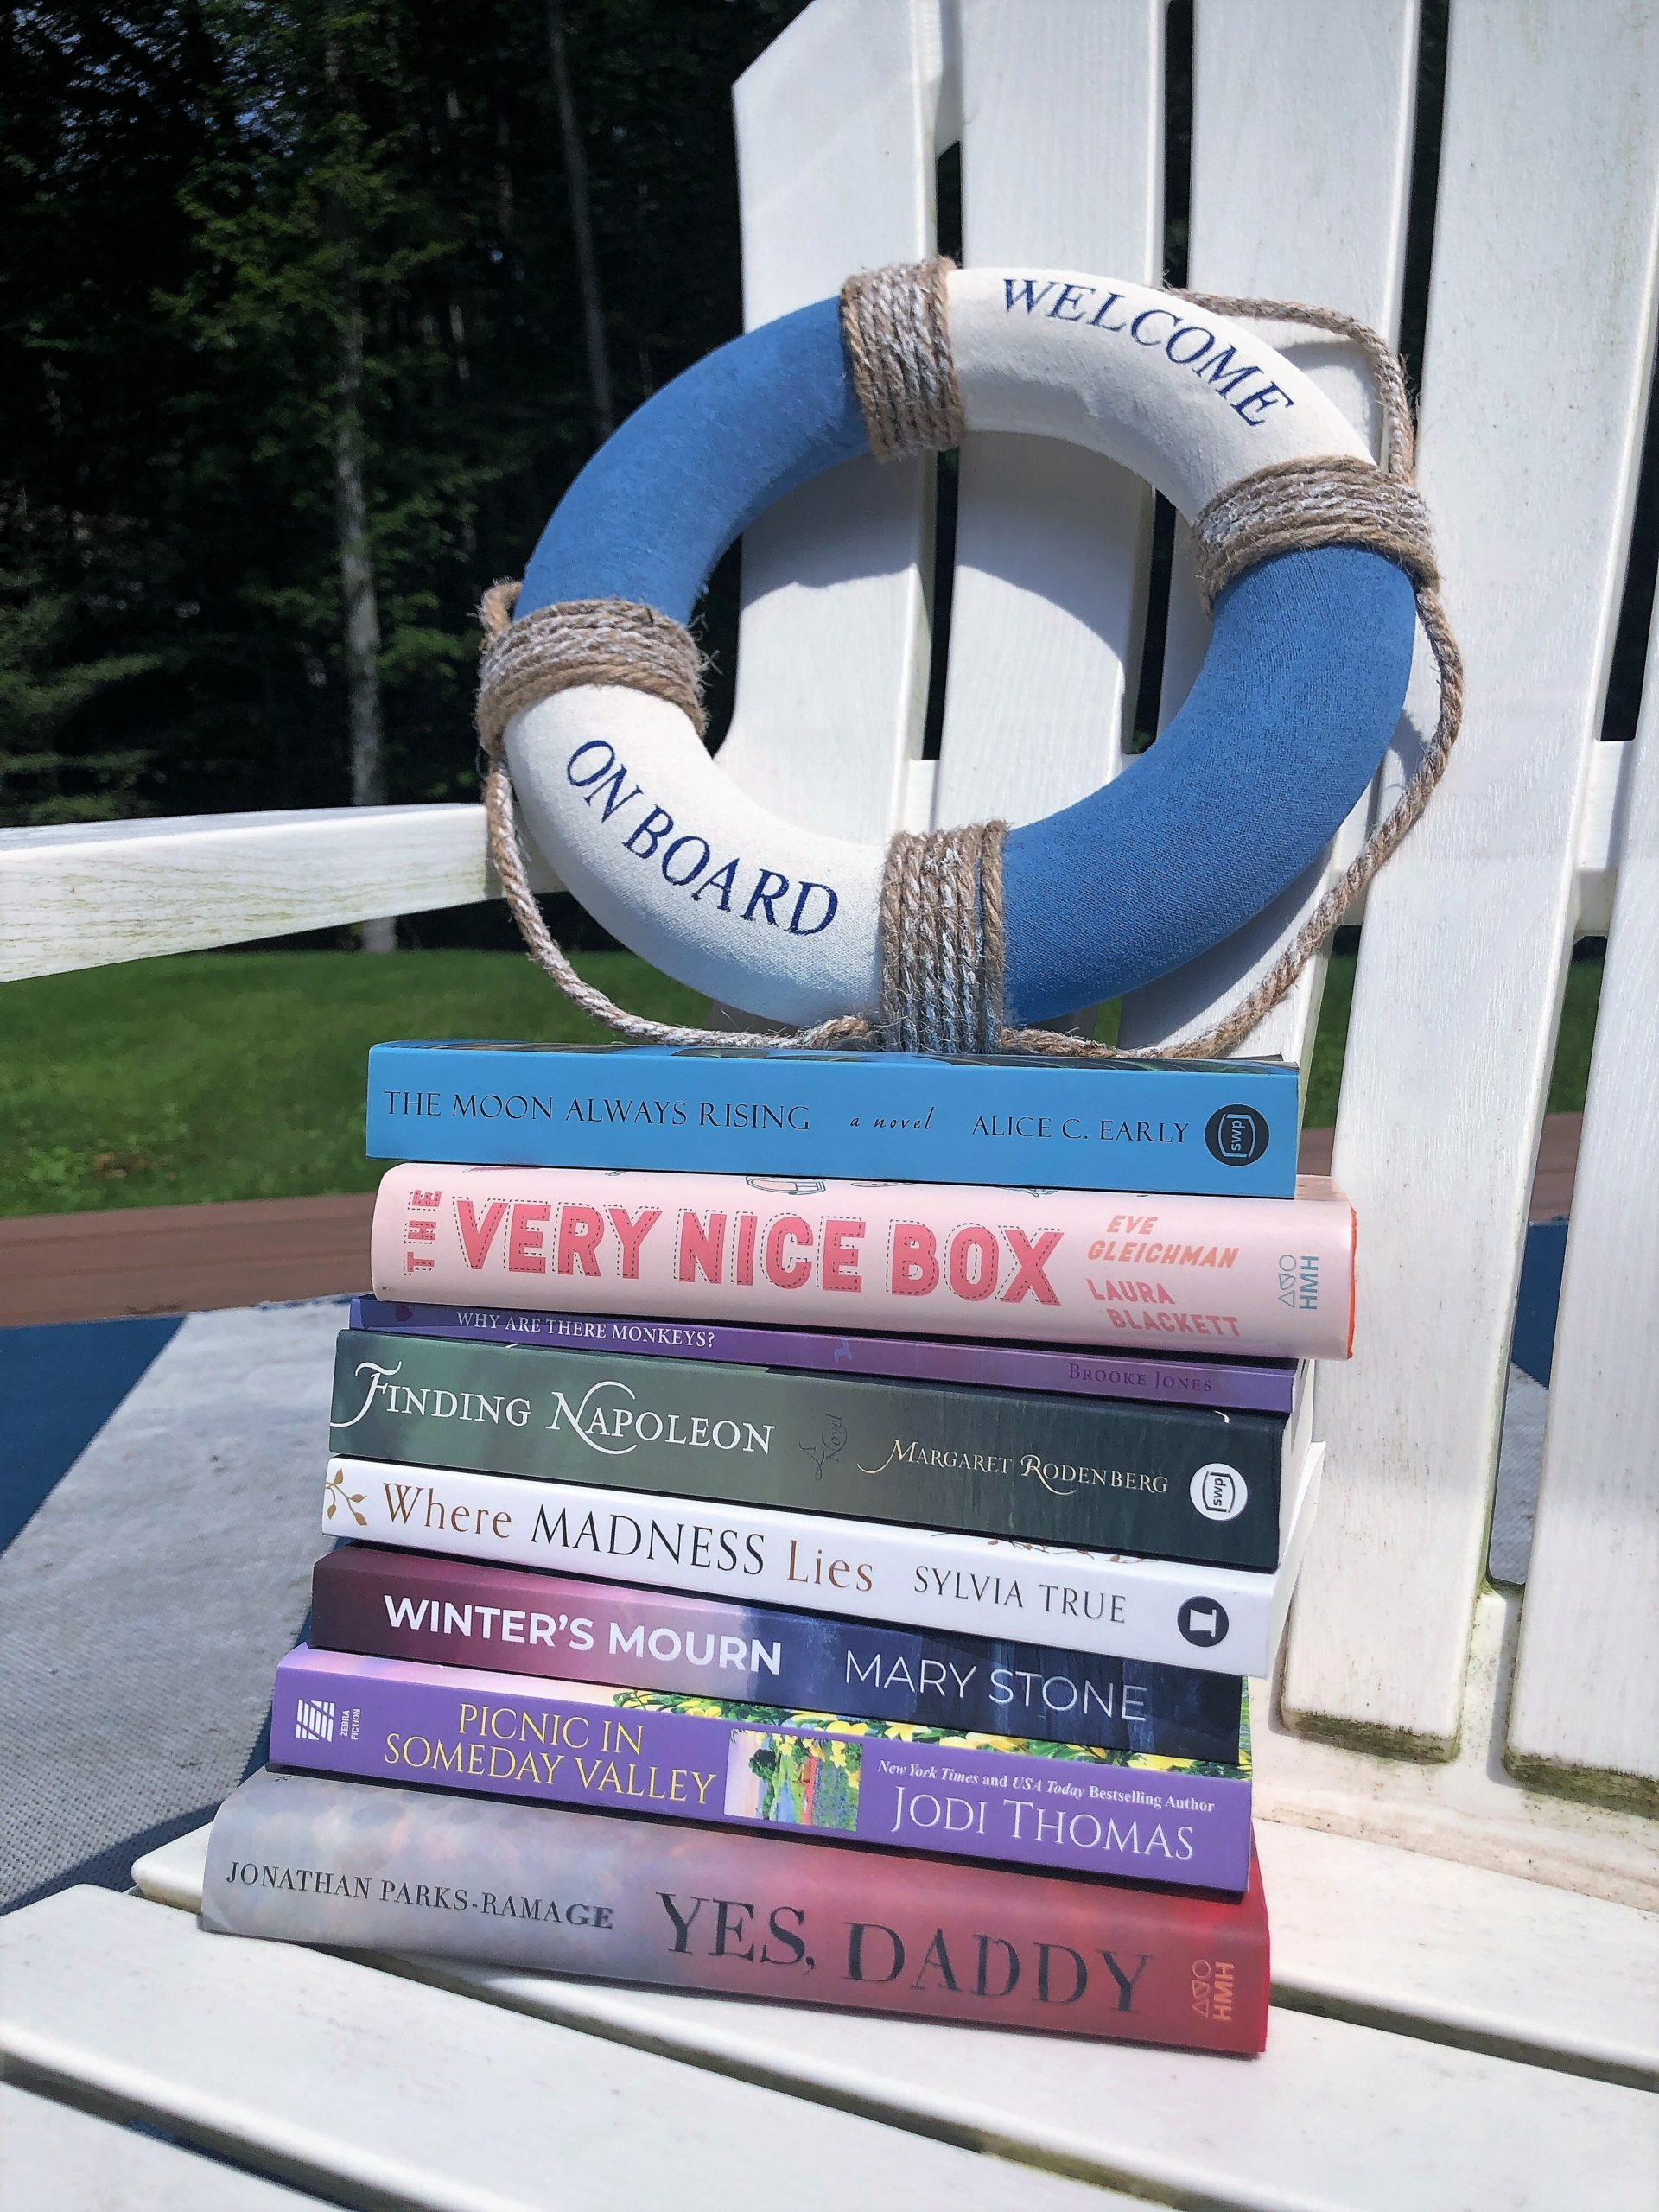 The Bedside Reading book selection for July 23.